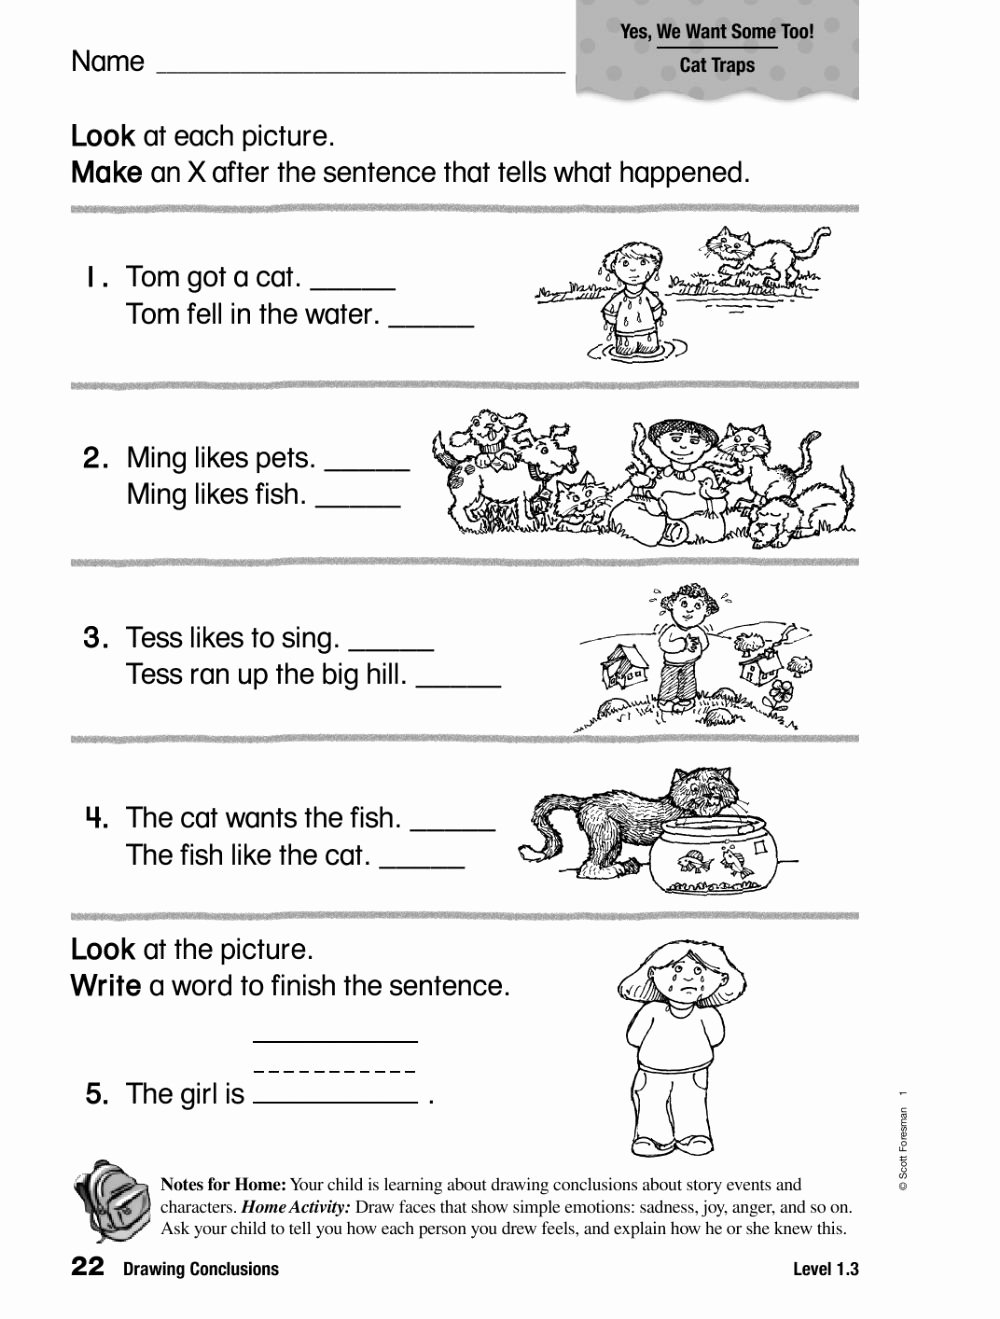 Draw Conclusions Worksheet 3rd Grade Lovely Numbers Game Maximum Destruction Coloring Pages Drawing